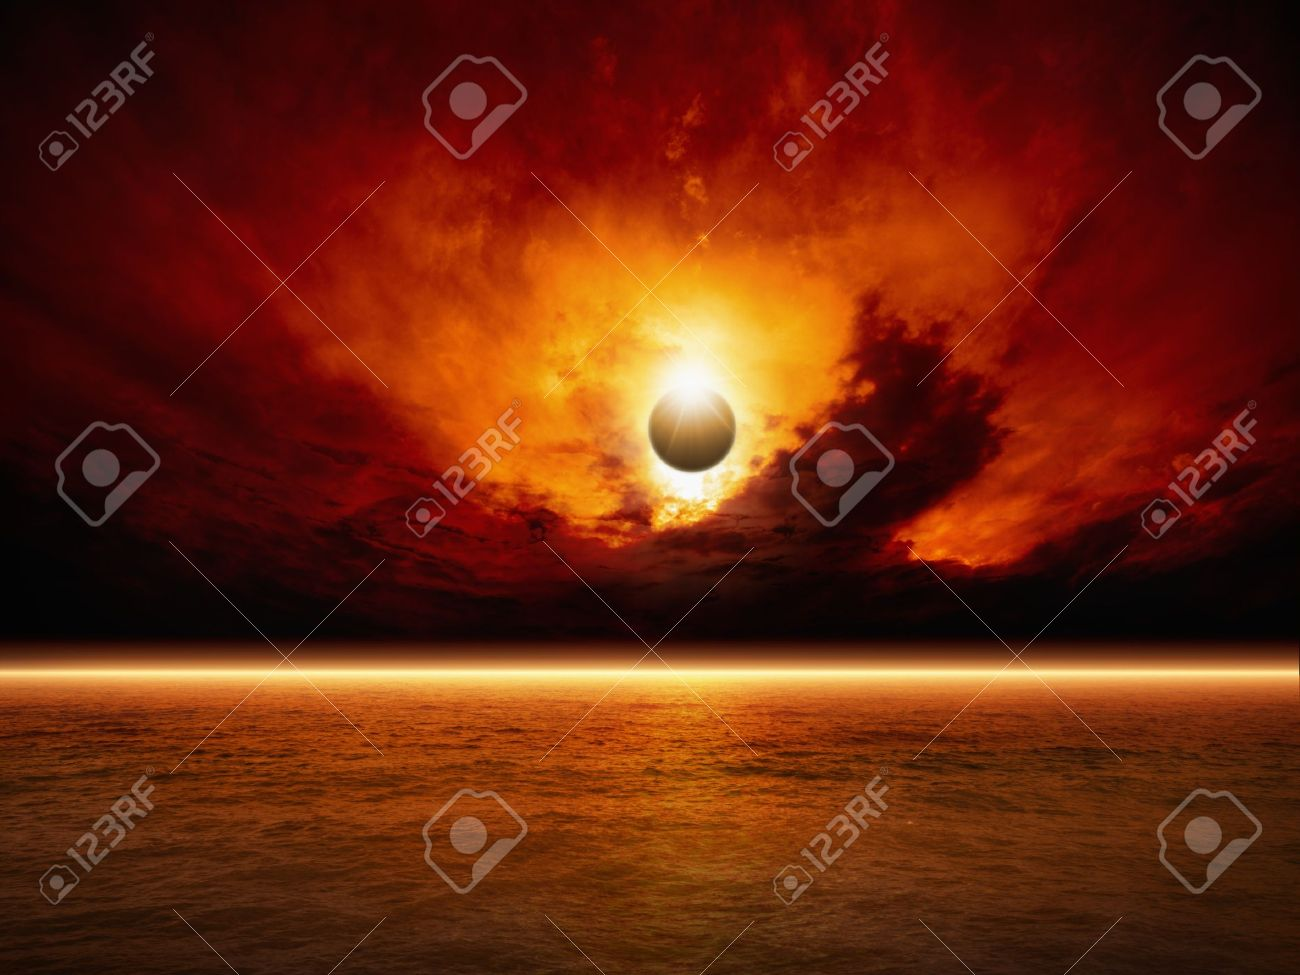 Dramatic apocalyptic background - sun eclipse, red sunset, dark sky, red sea, glowing horizon - 20334532